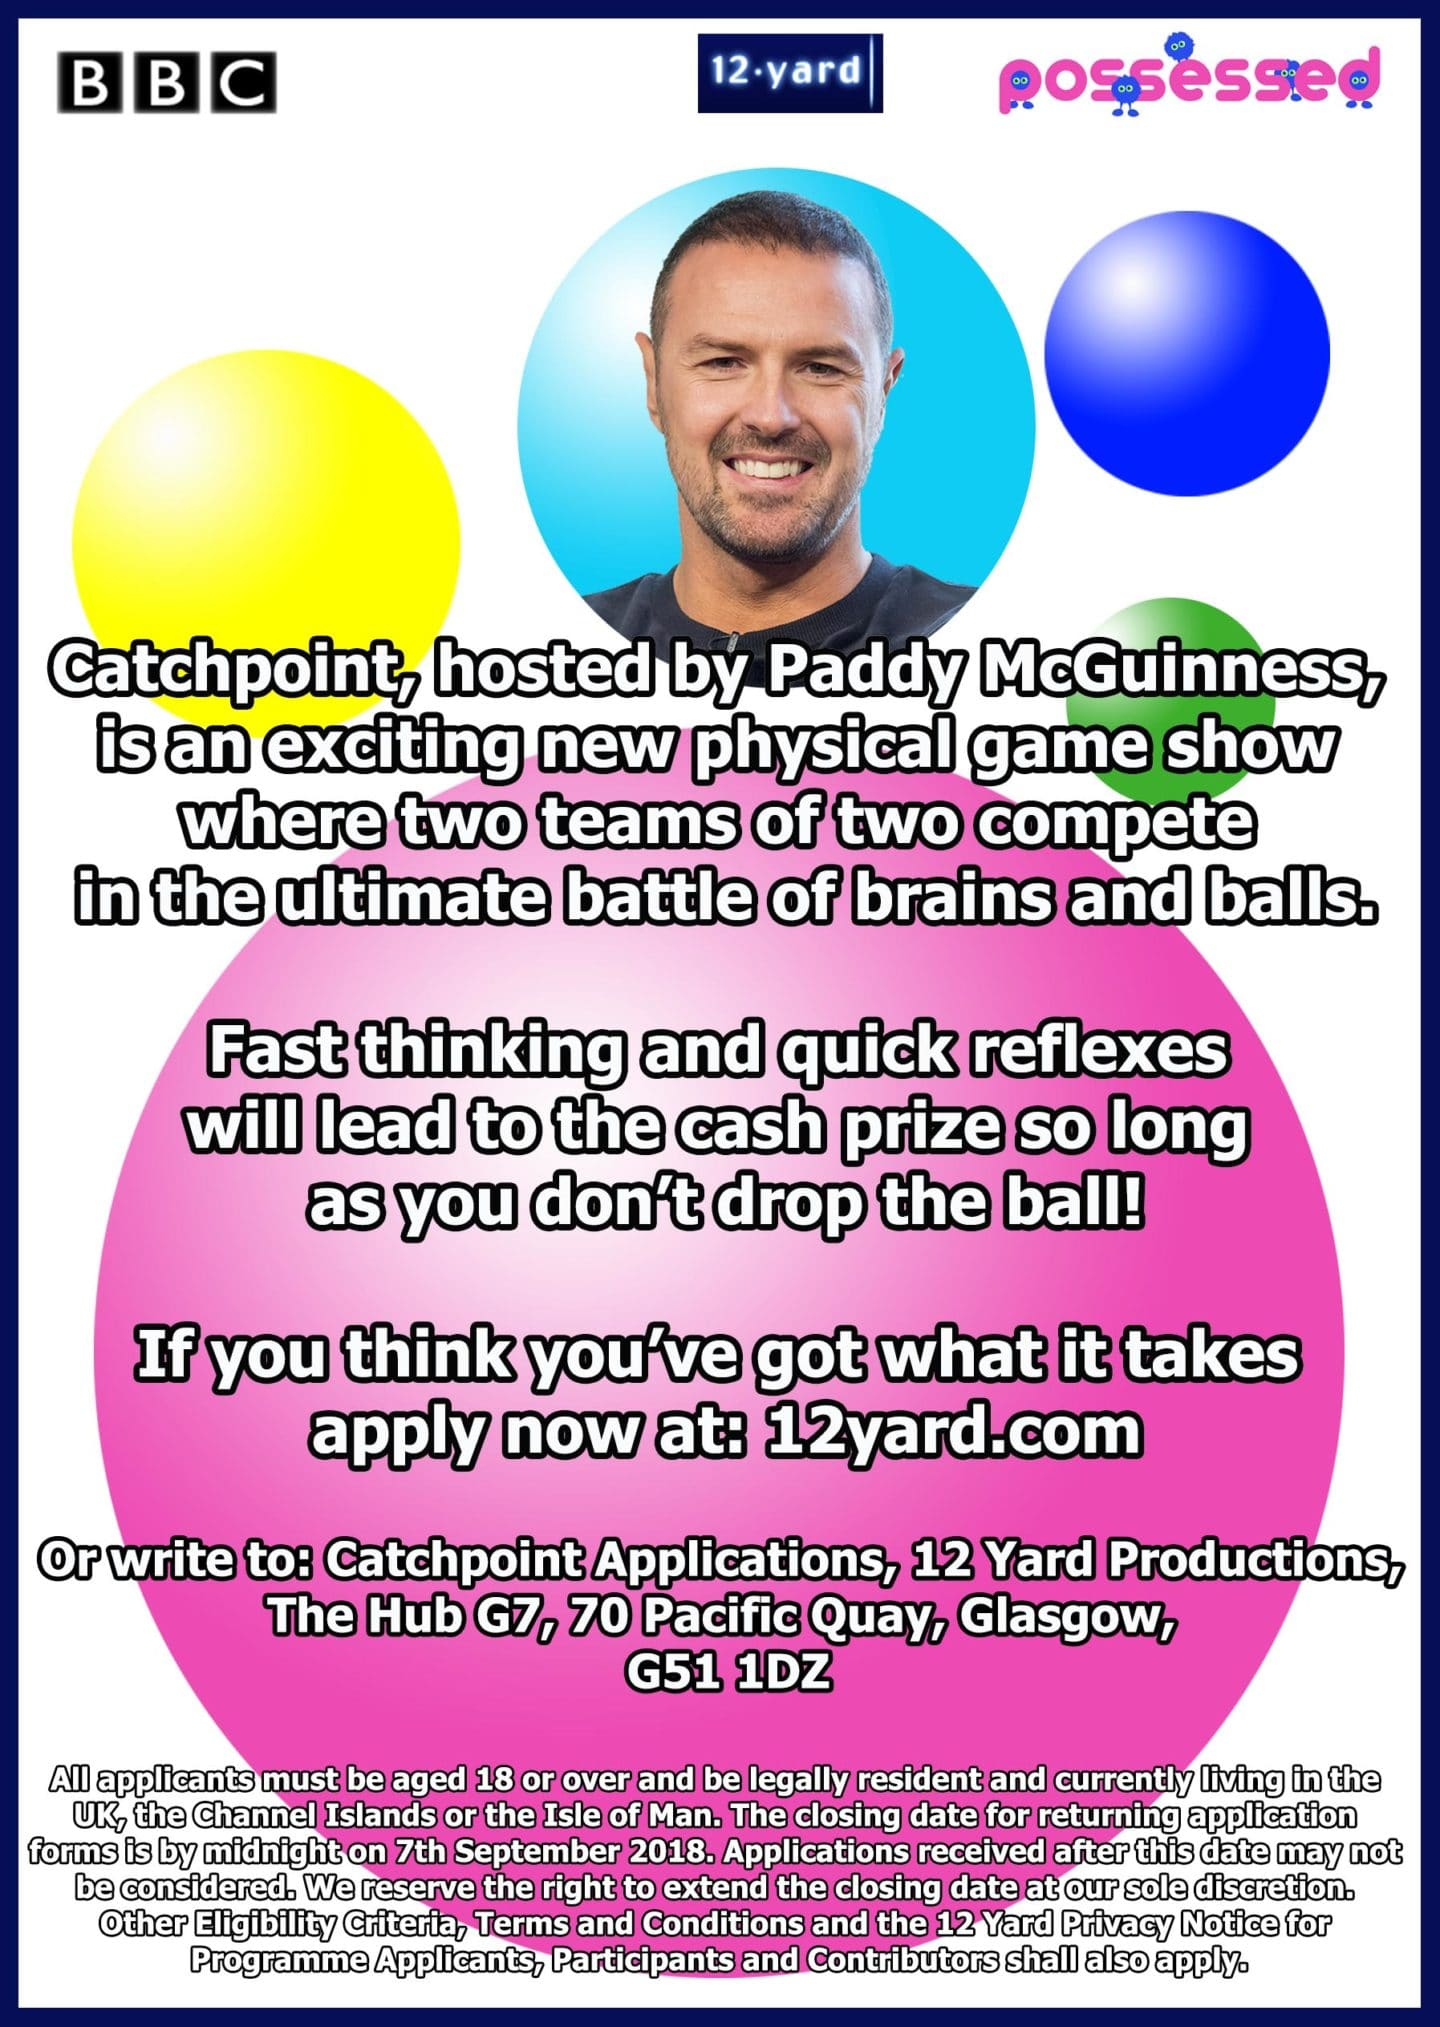 Catchpoint hosted by Paddy McGuiness an exciting new physical game show